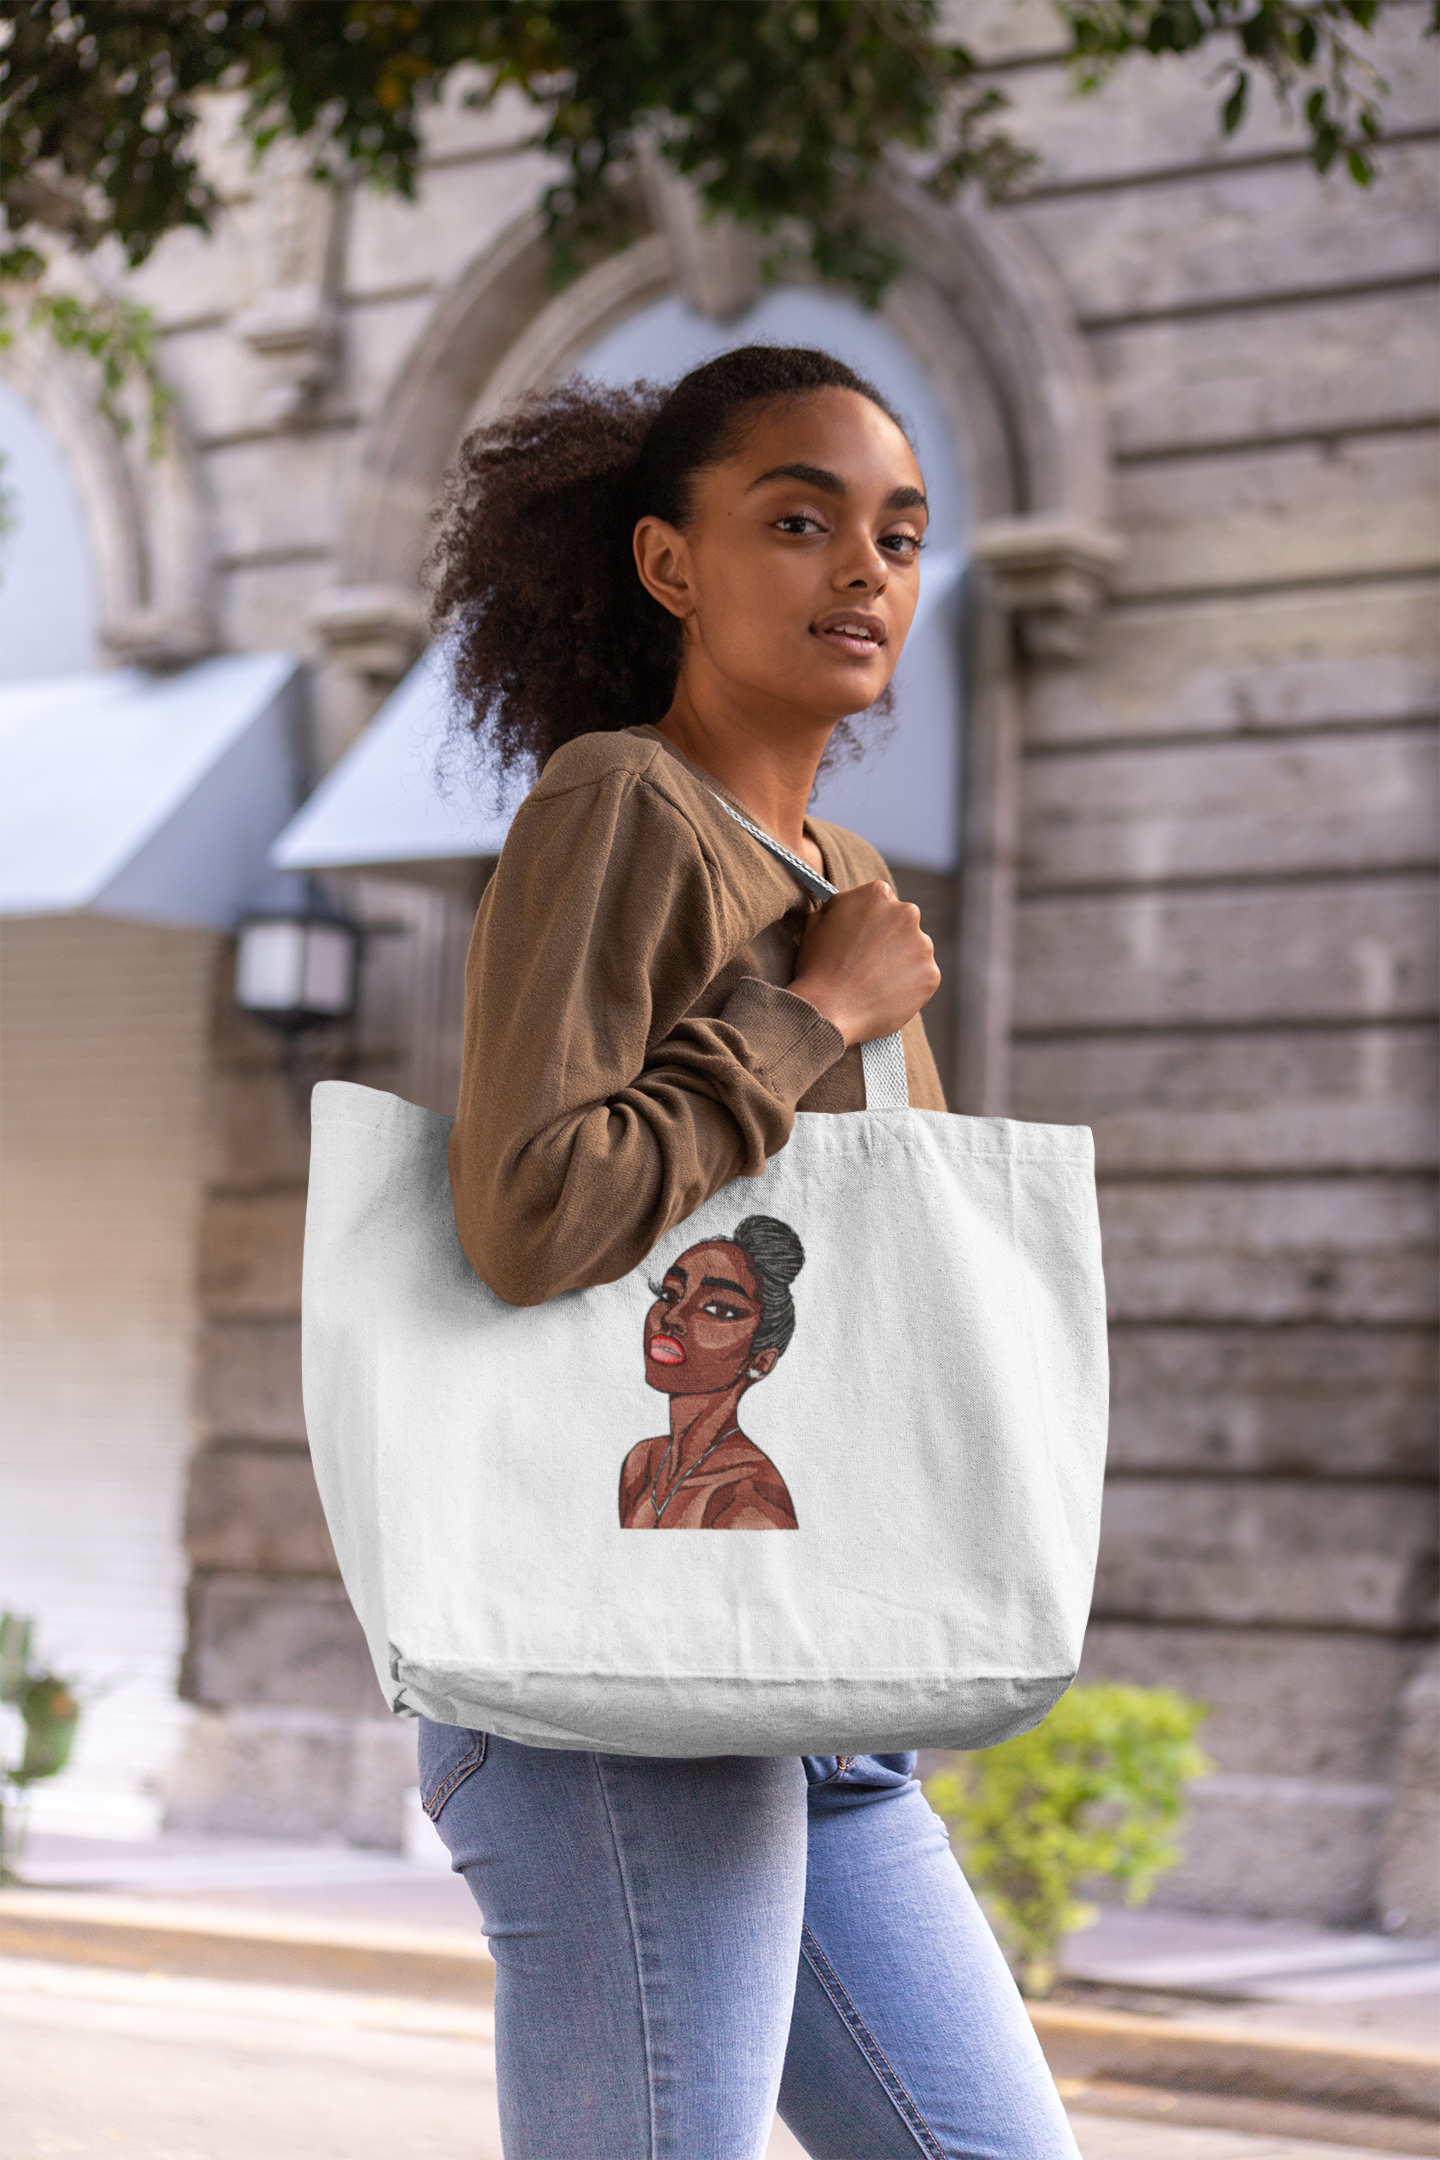 Embroidered bag with Portrait of beautiful woman